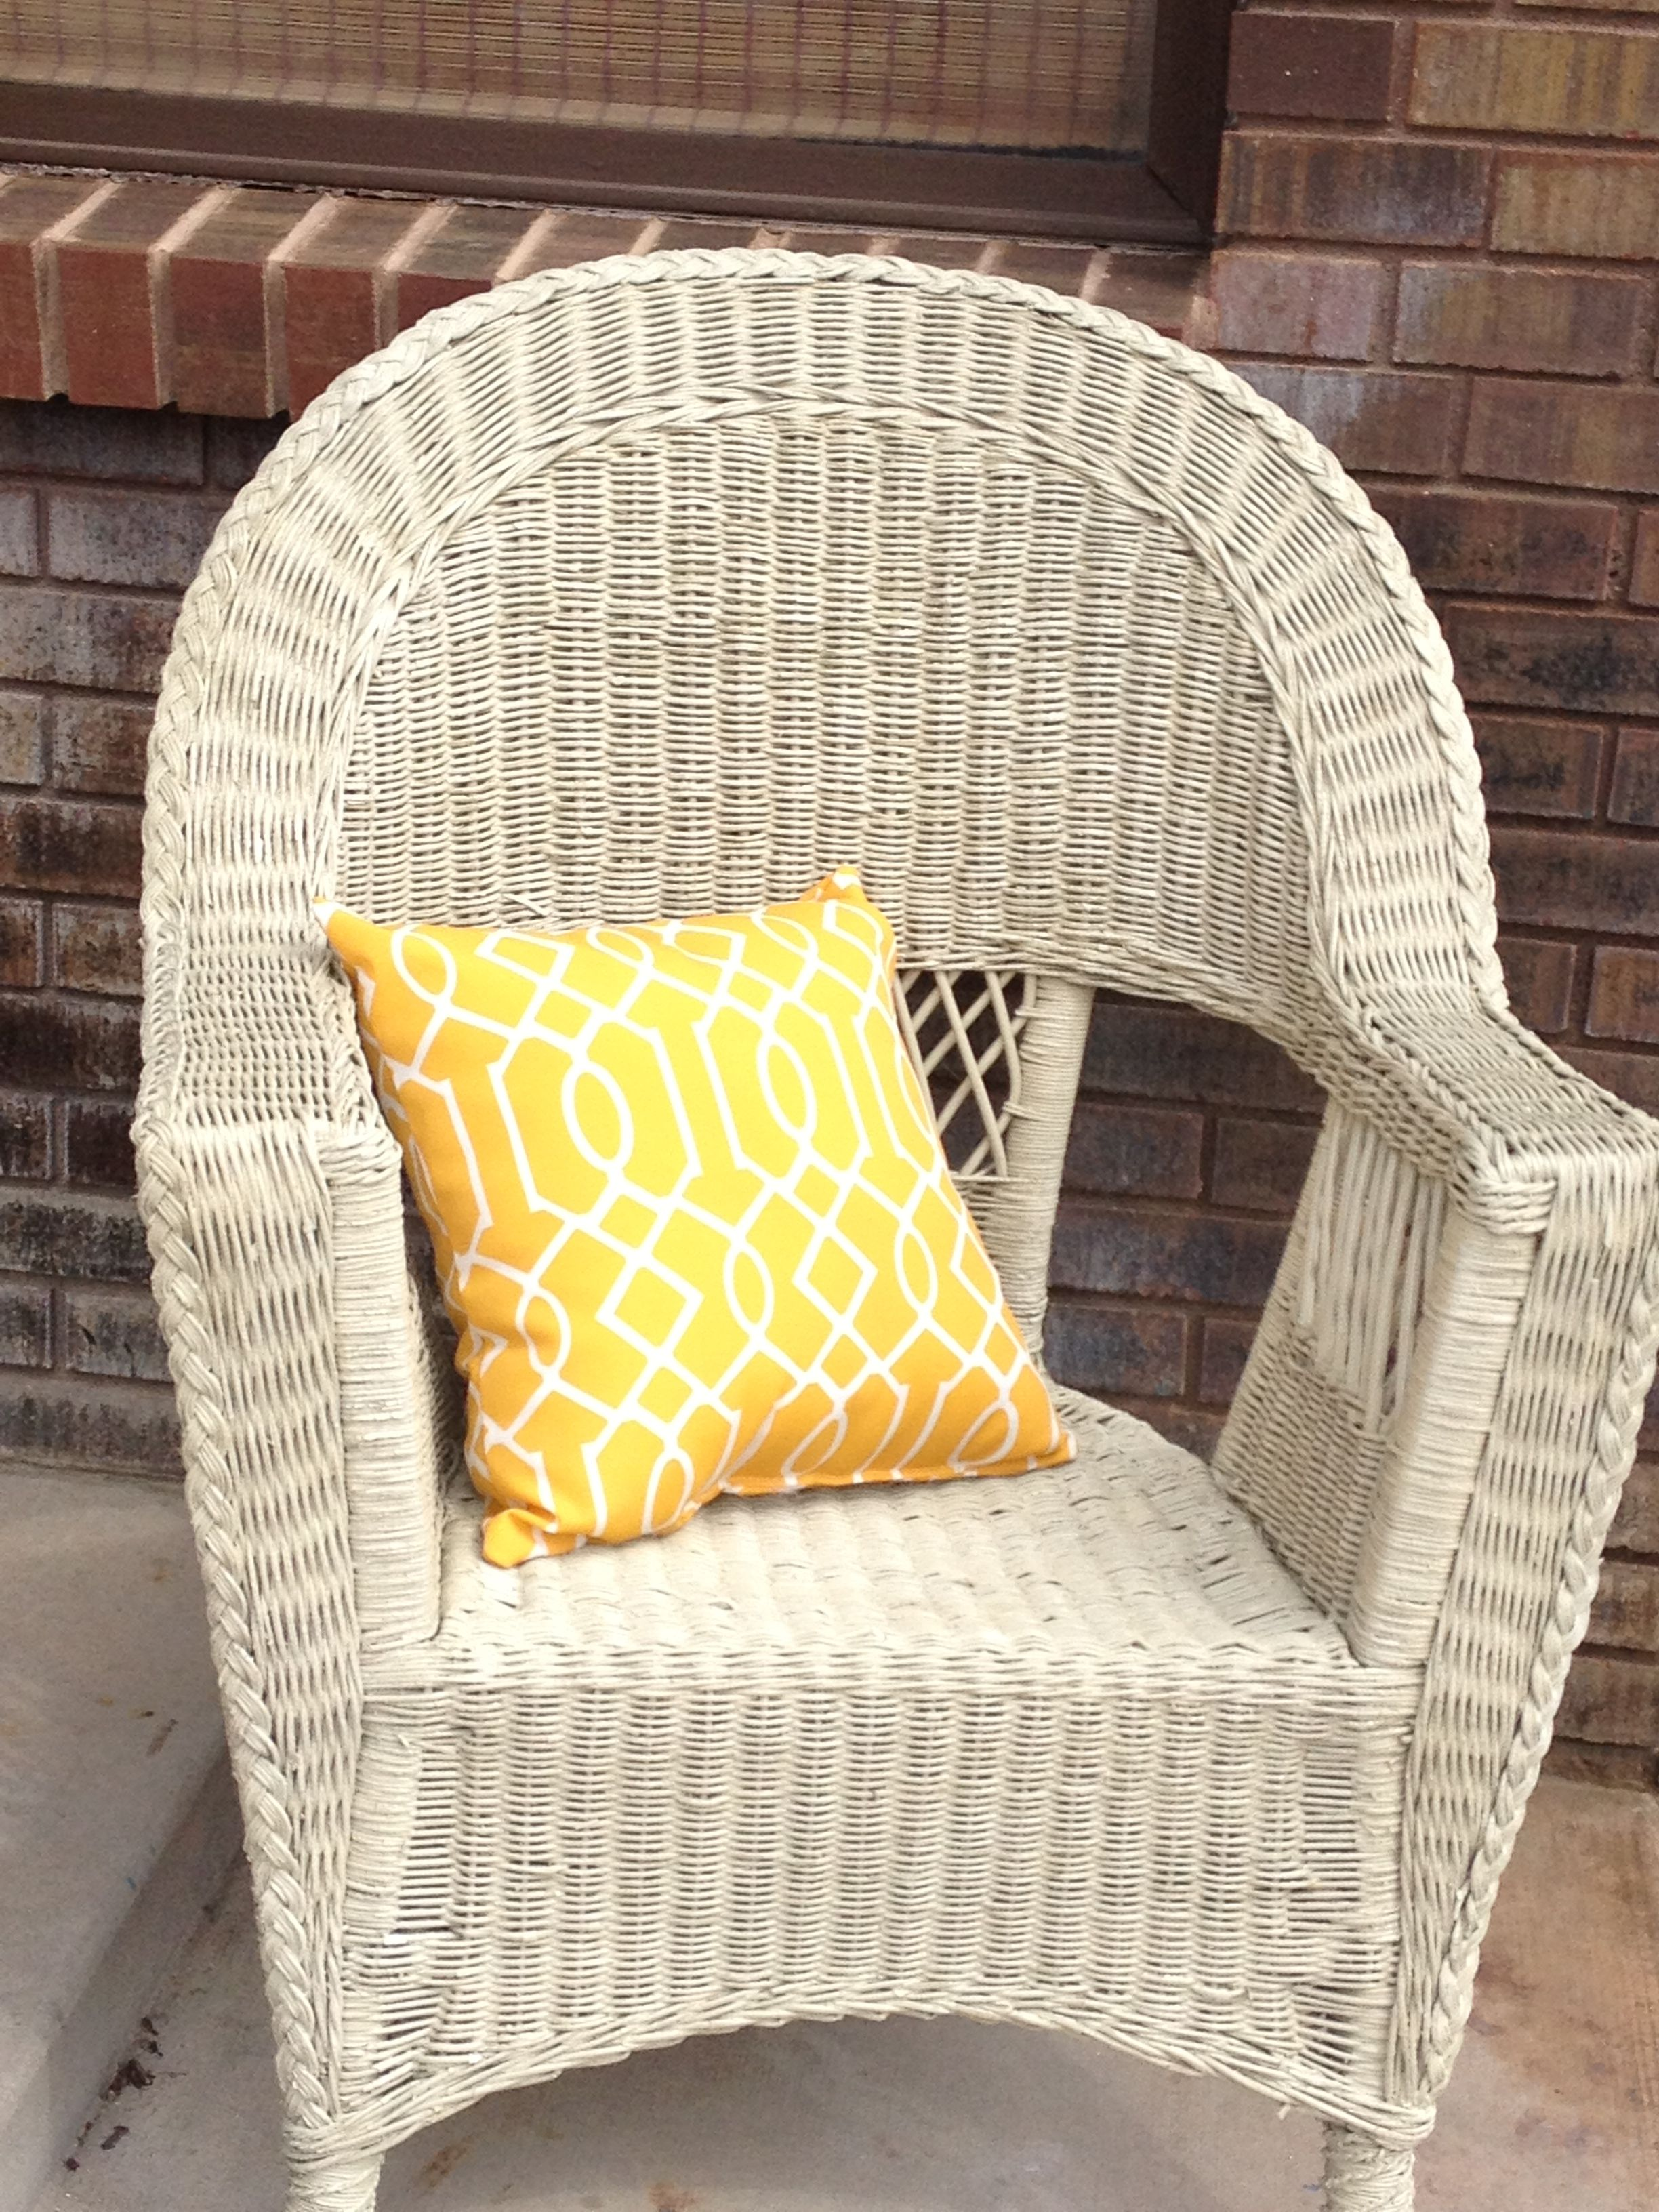 Old Wicker Chair, Almond Spray Paint, Kmart Pillow